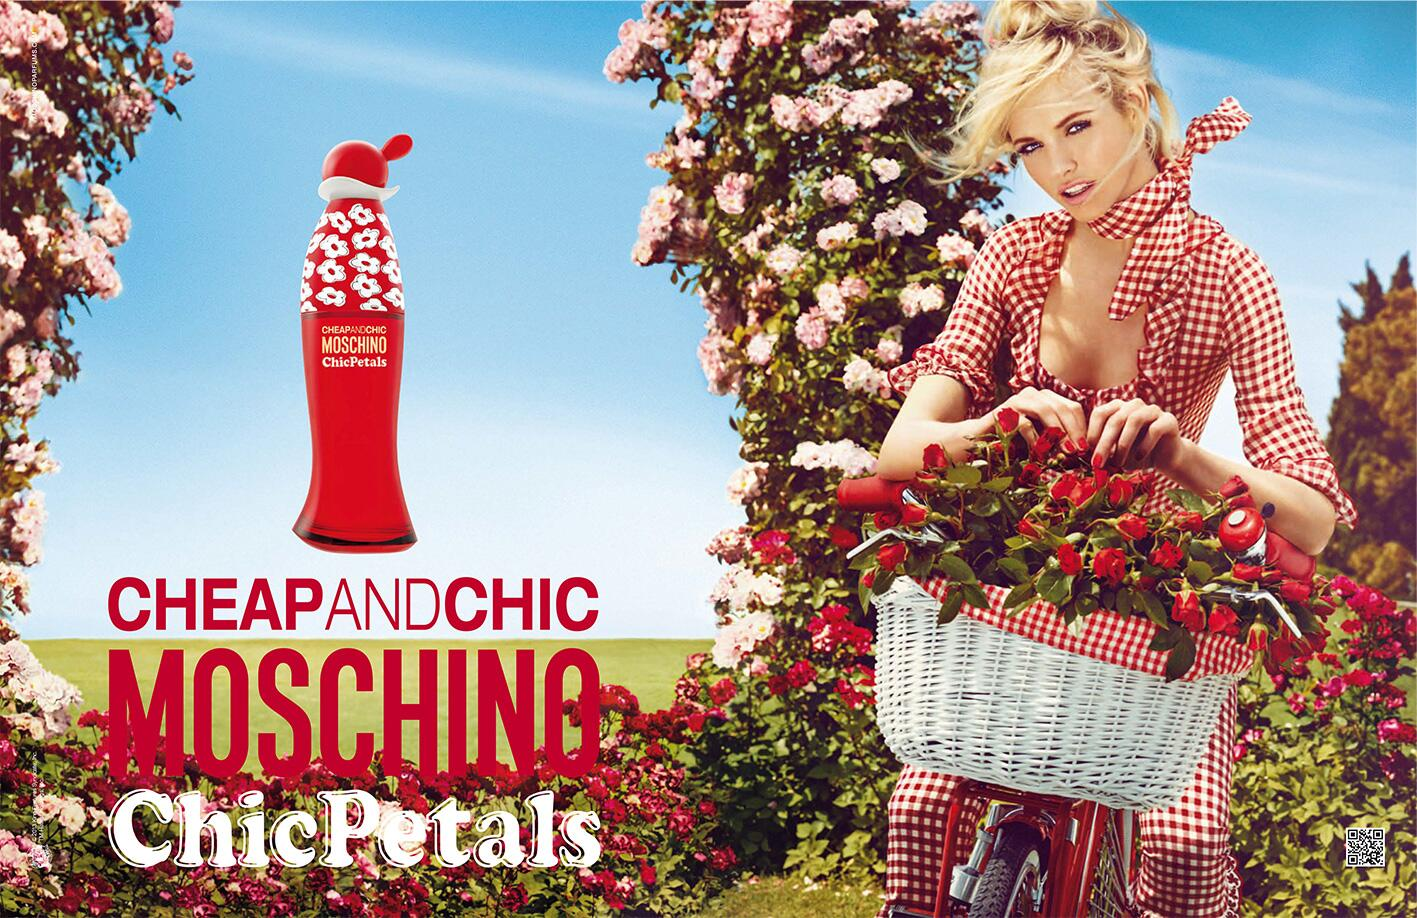 """Summer is here for @Moschinofficial's """"Chic Petals"""" fragrance ads starring @GintaLapina89 shot by @giampaolosgura. http://t.co/VEGbxEzUh1"""